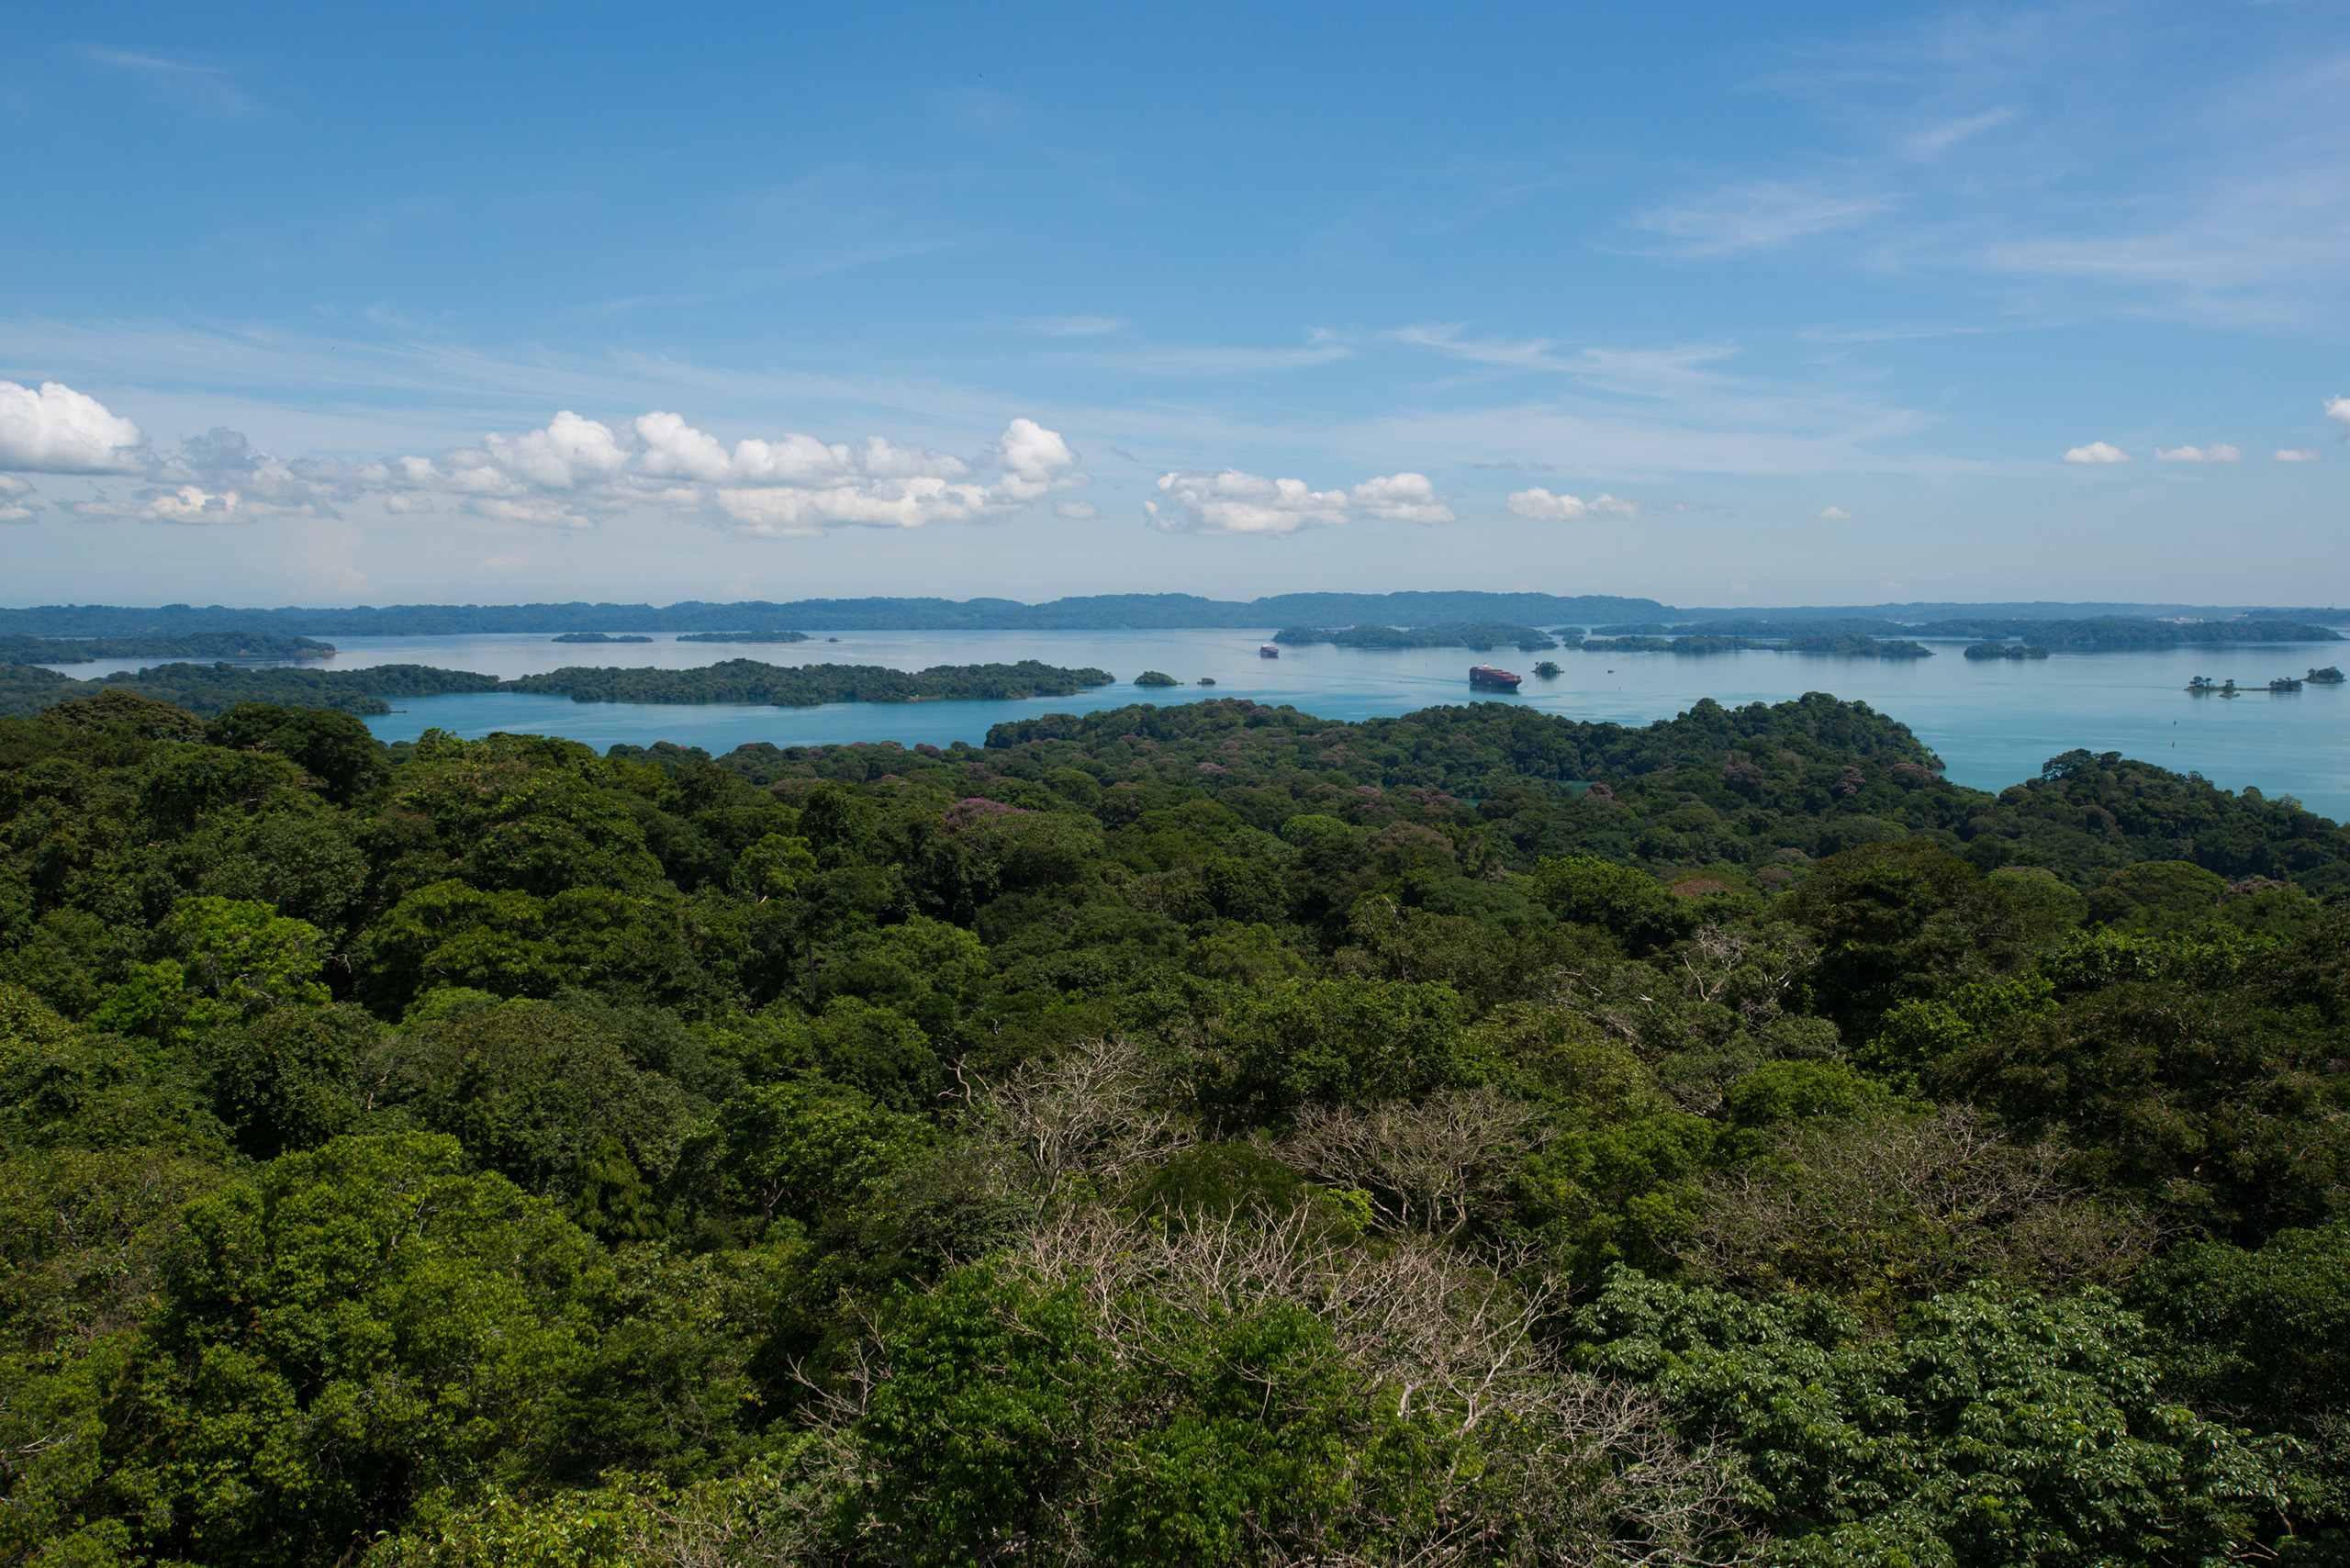 Aerial view of forest at Barro Colorado Island